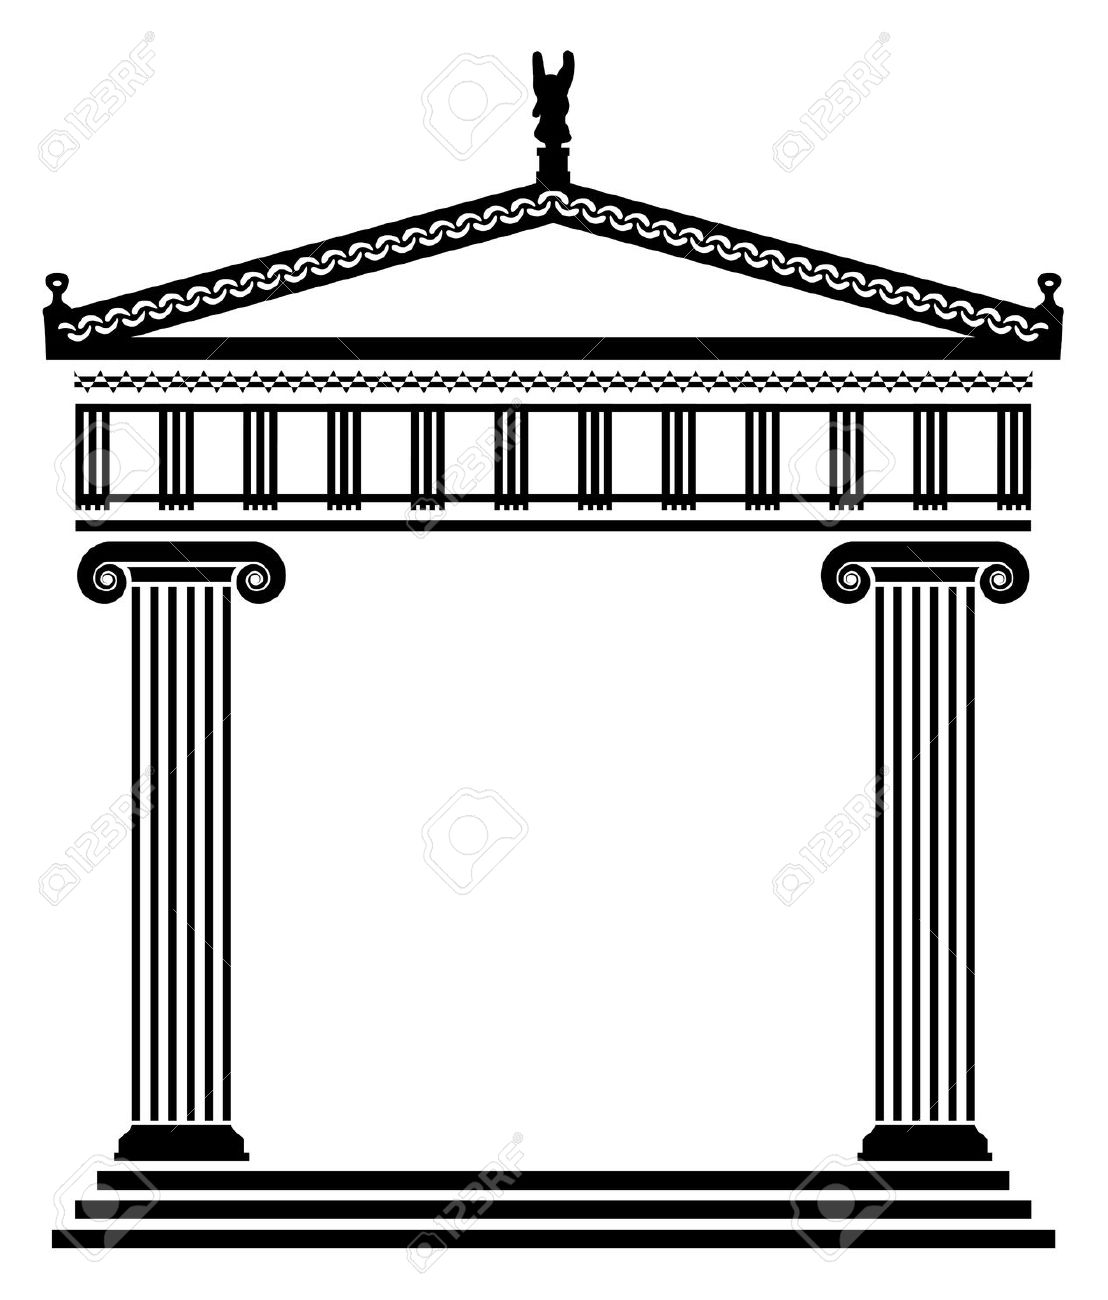 Greek columns clipart banner transparent stock Free Greek Temple Cliparts, Download Free Clip Art, Free Clip Art on ... banner transparent stock